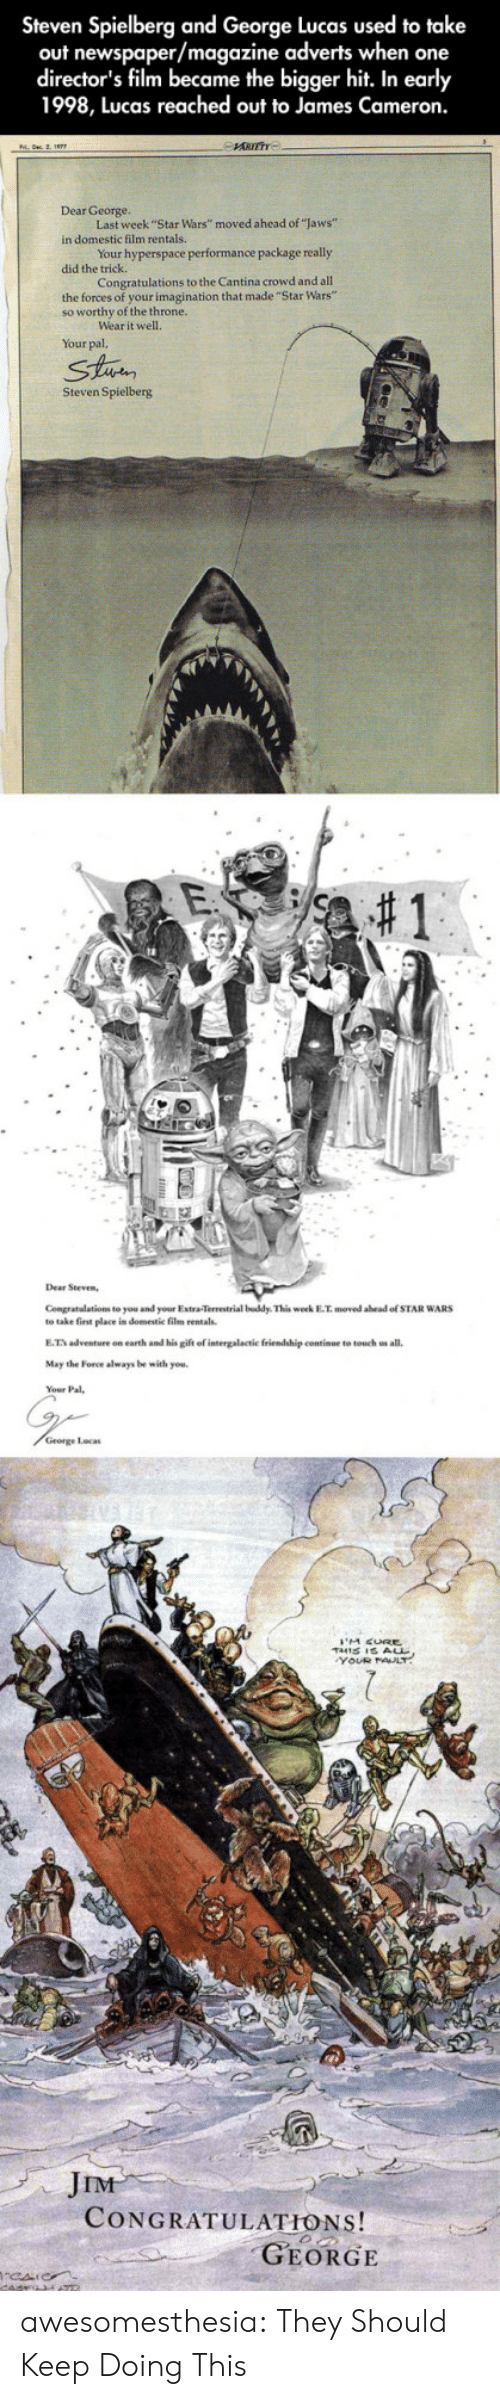 """Star Wars, Tumblr, and Blog: Steven Spielberg and George Lucas used to take  out newspaper/magazine adverts when one  director's film became the bigger hit. In early  1998, Lucas reached out to James Cameron.  Dear George.  Last week """"Star Wars"""" moved ahead of """"laws""""  in domestic film rentals  Your hyperspace performance package really  did the  Congratulations to the Cantina crowd and all  the forces of your imagination that made """"""""Star Wars""""  so worthy of the throne.  ear it well.  Your pal,  Strin  Steven Spielberg  Congratalations to you and your Extra-Terrestrial buddy This week E.T. moved abead of STAR WARS  to take first elace in domestic film rentals.  E.T adventure on earth and his gift of intergalactic friendship continue to touch us all.  May the Force always be with you.  George Locas  JIM  CONGRATULATIONS!  GEORGE awesomesthesia:  They Should Keep Doing This"""